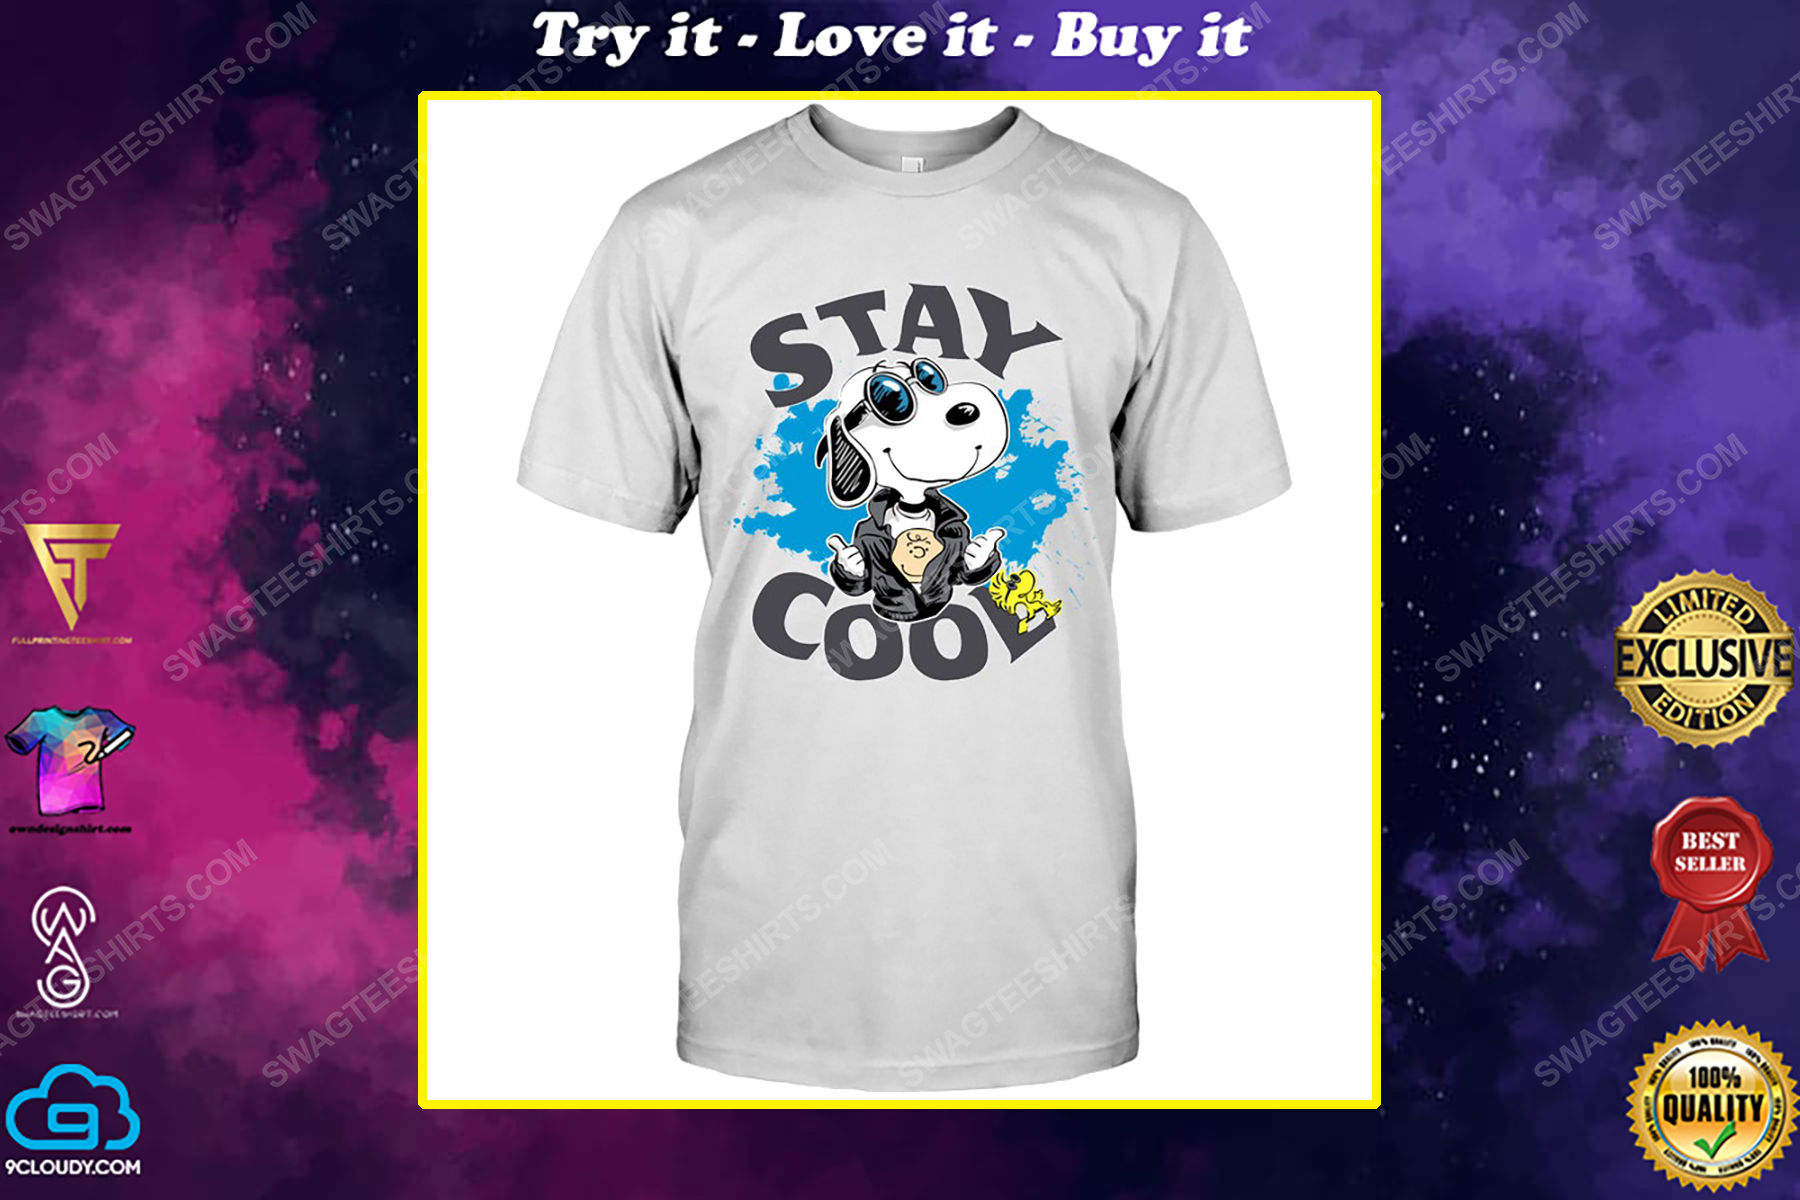 Charlie brown snoopy and woodstock stay cool shirt